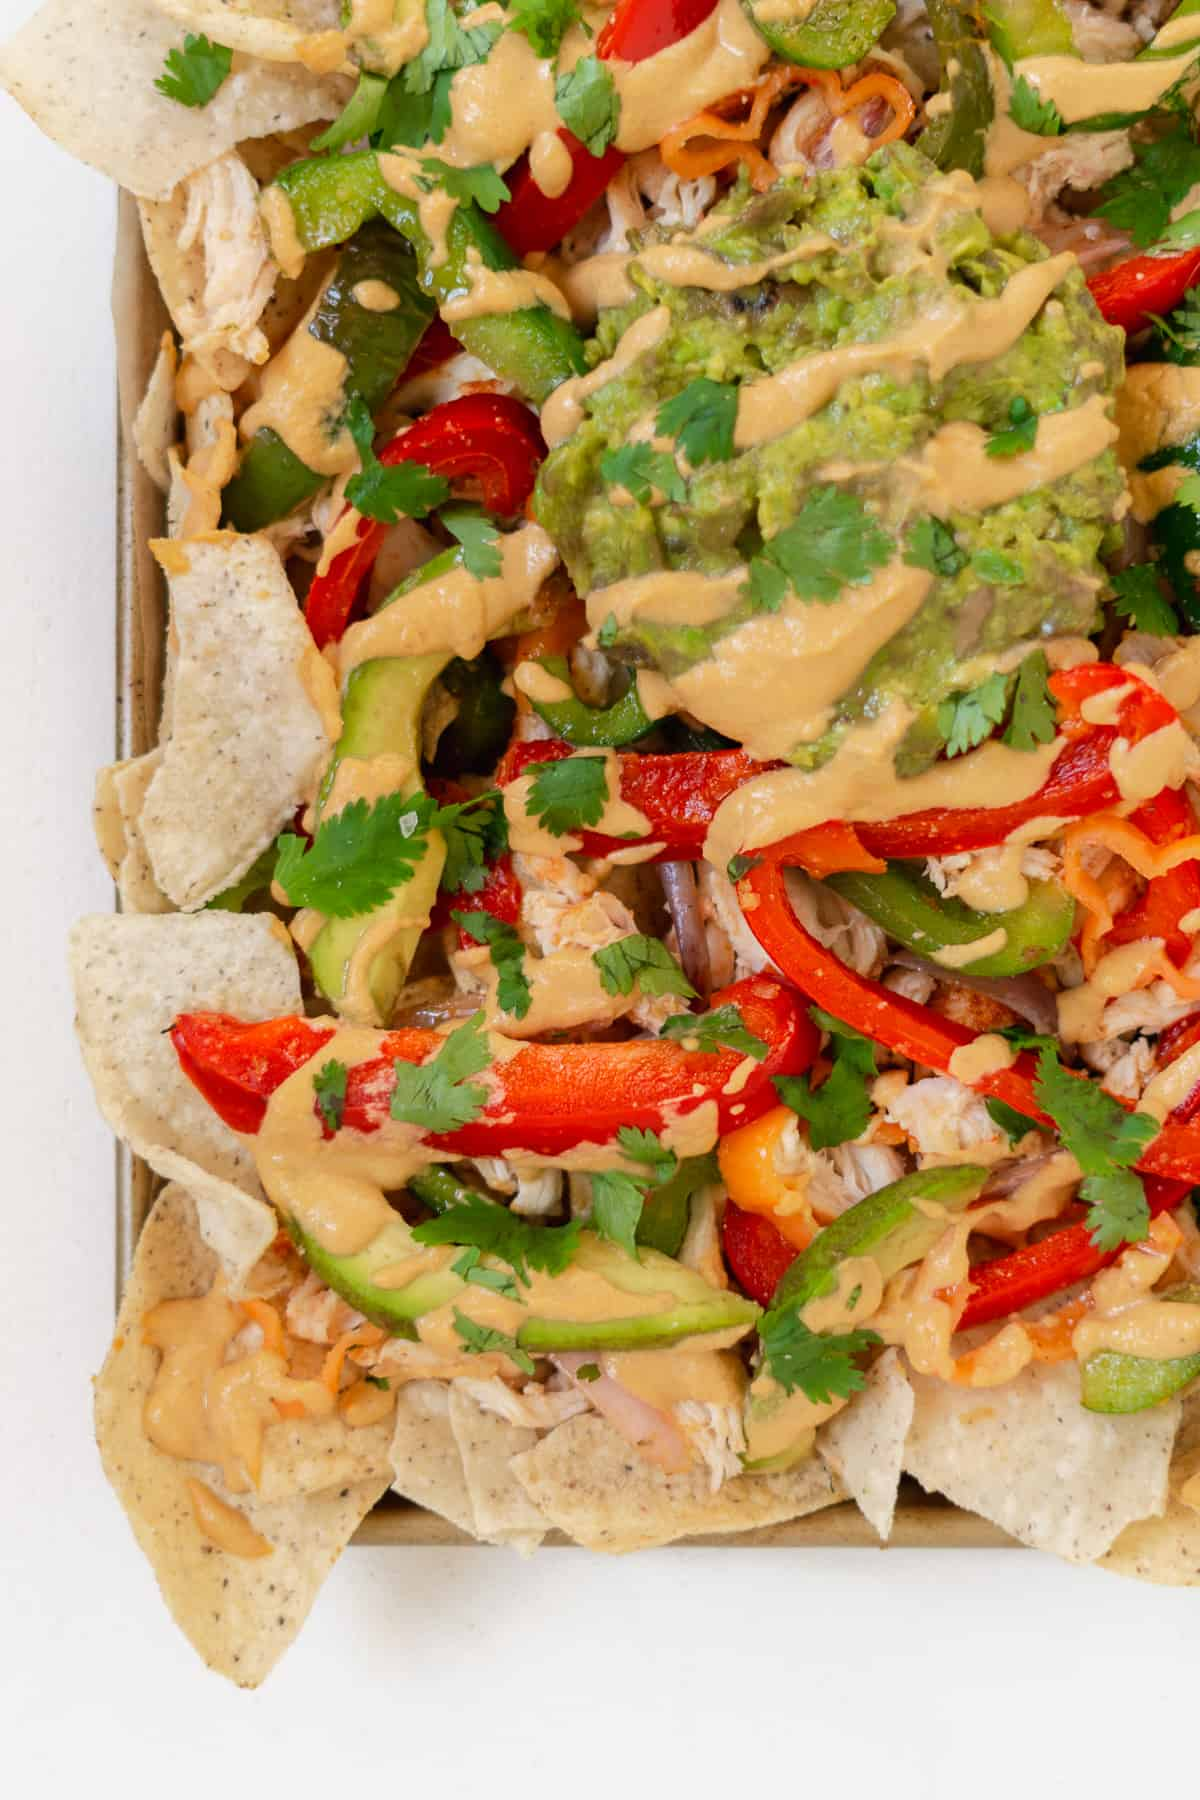 Corner of a pan filled with nachos topped with peppers.